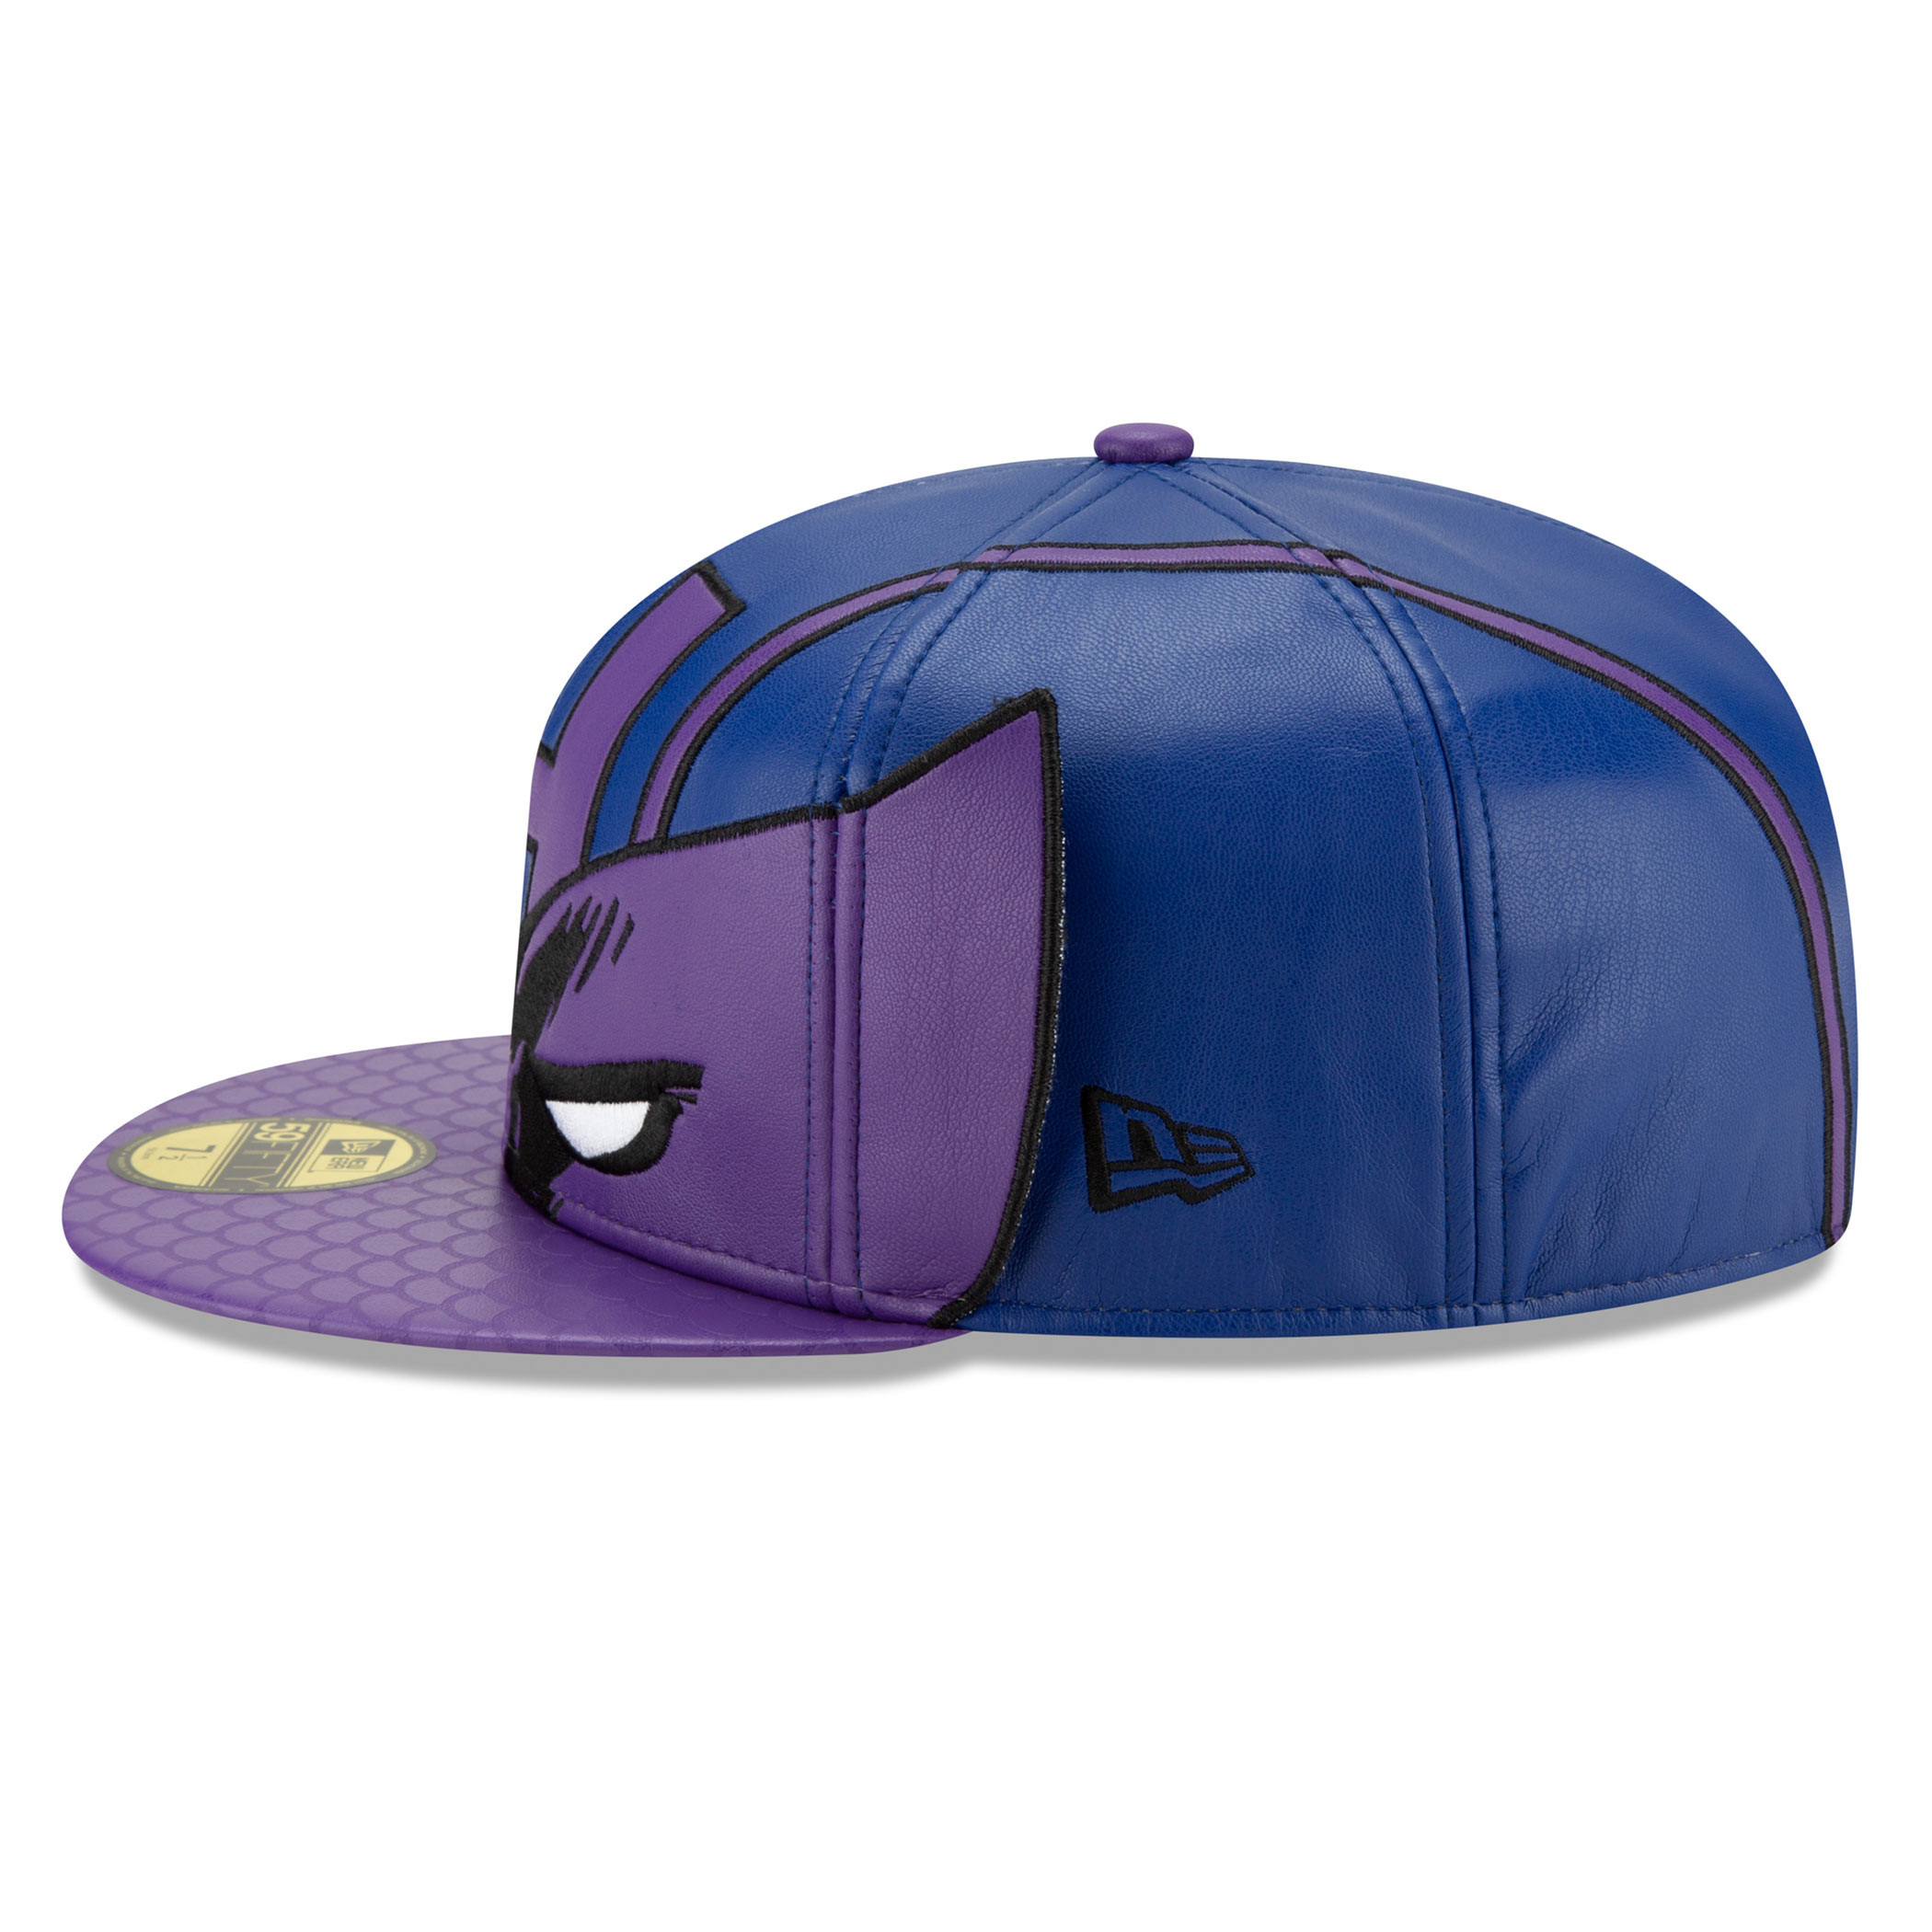 Hawkeye Classic Costume Mask 59Fifty Fitted New Era Hat